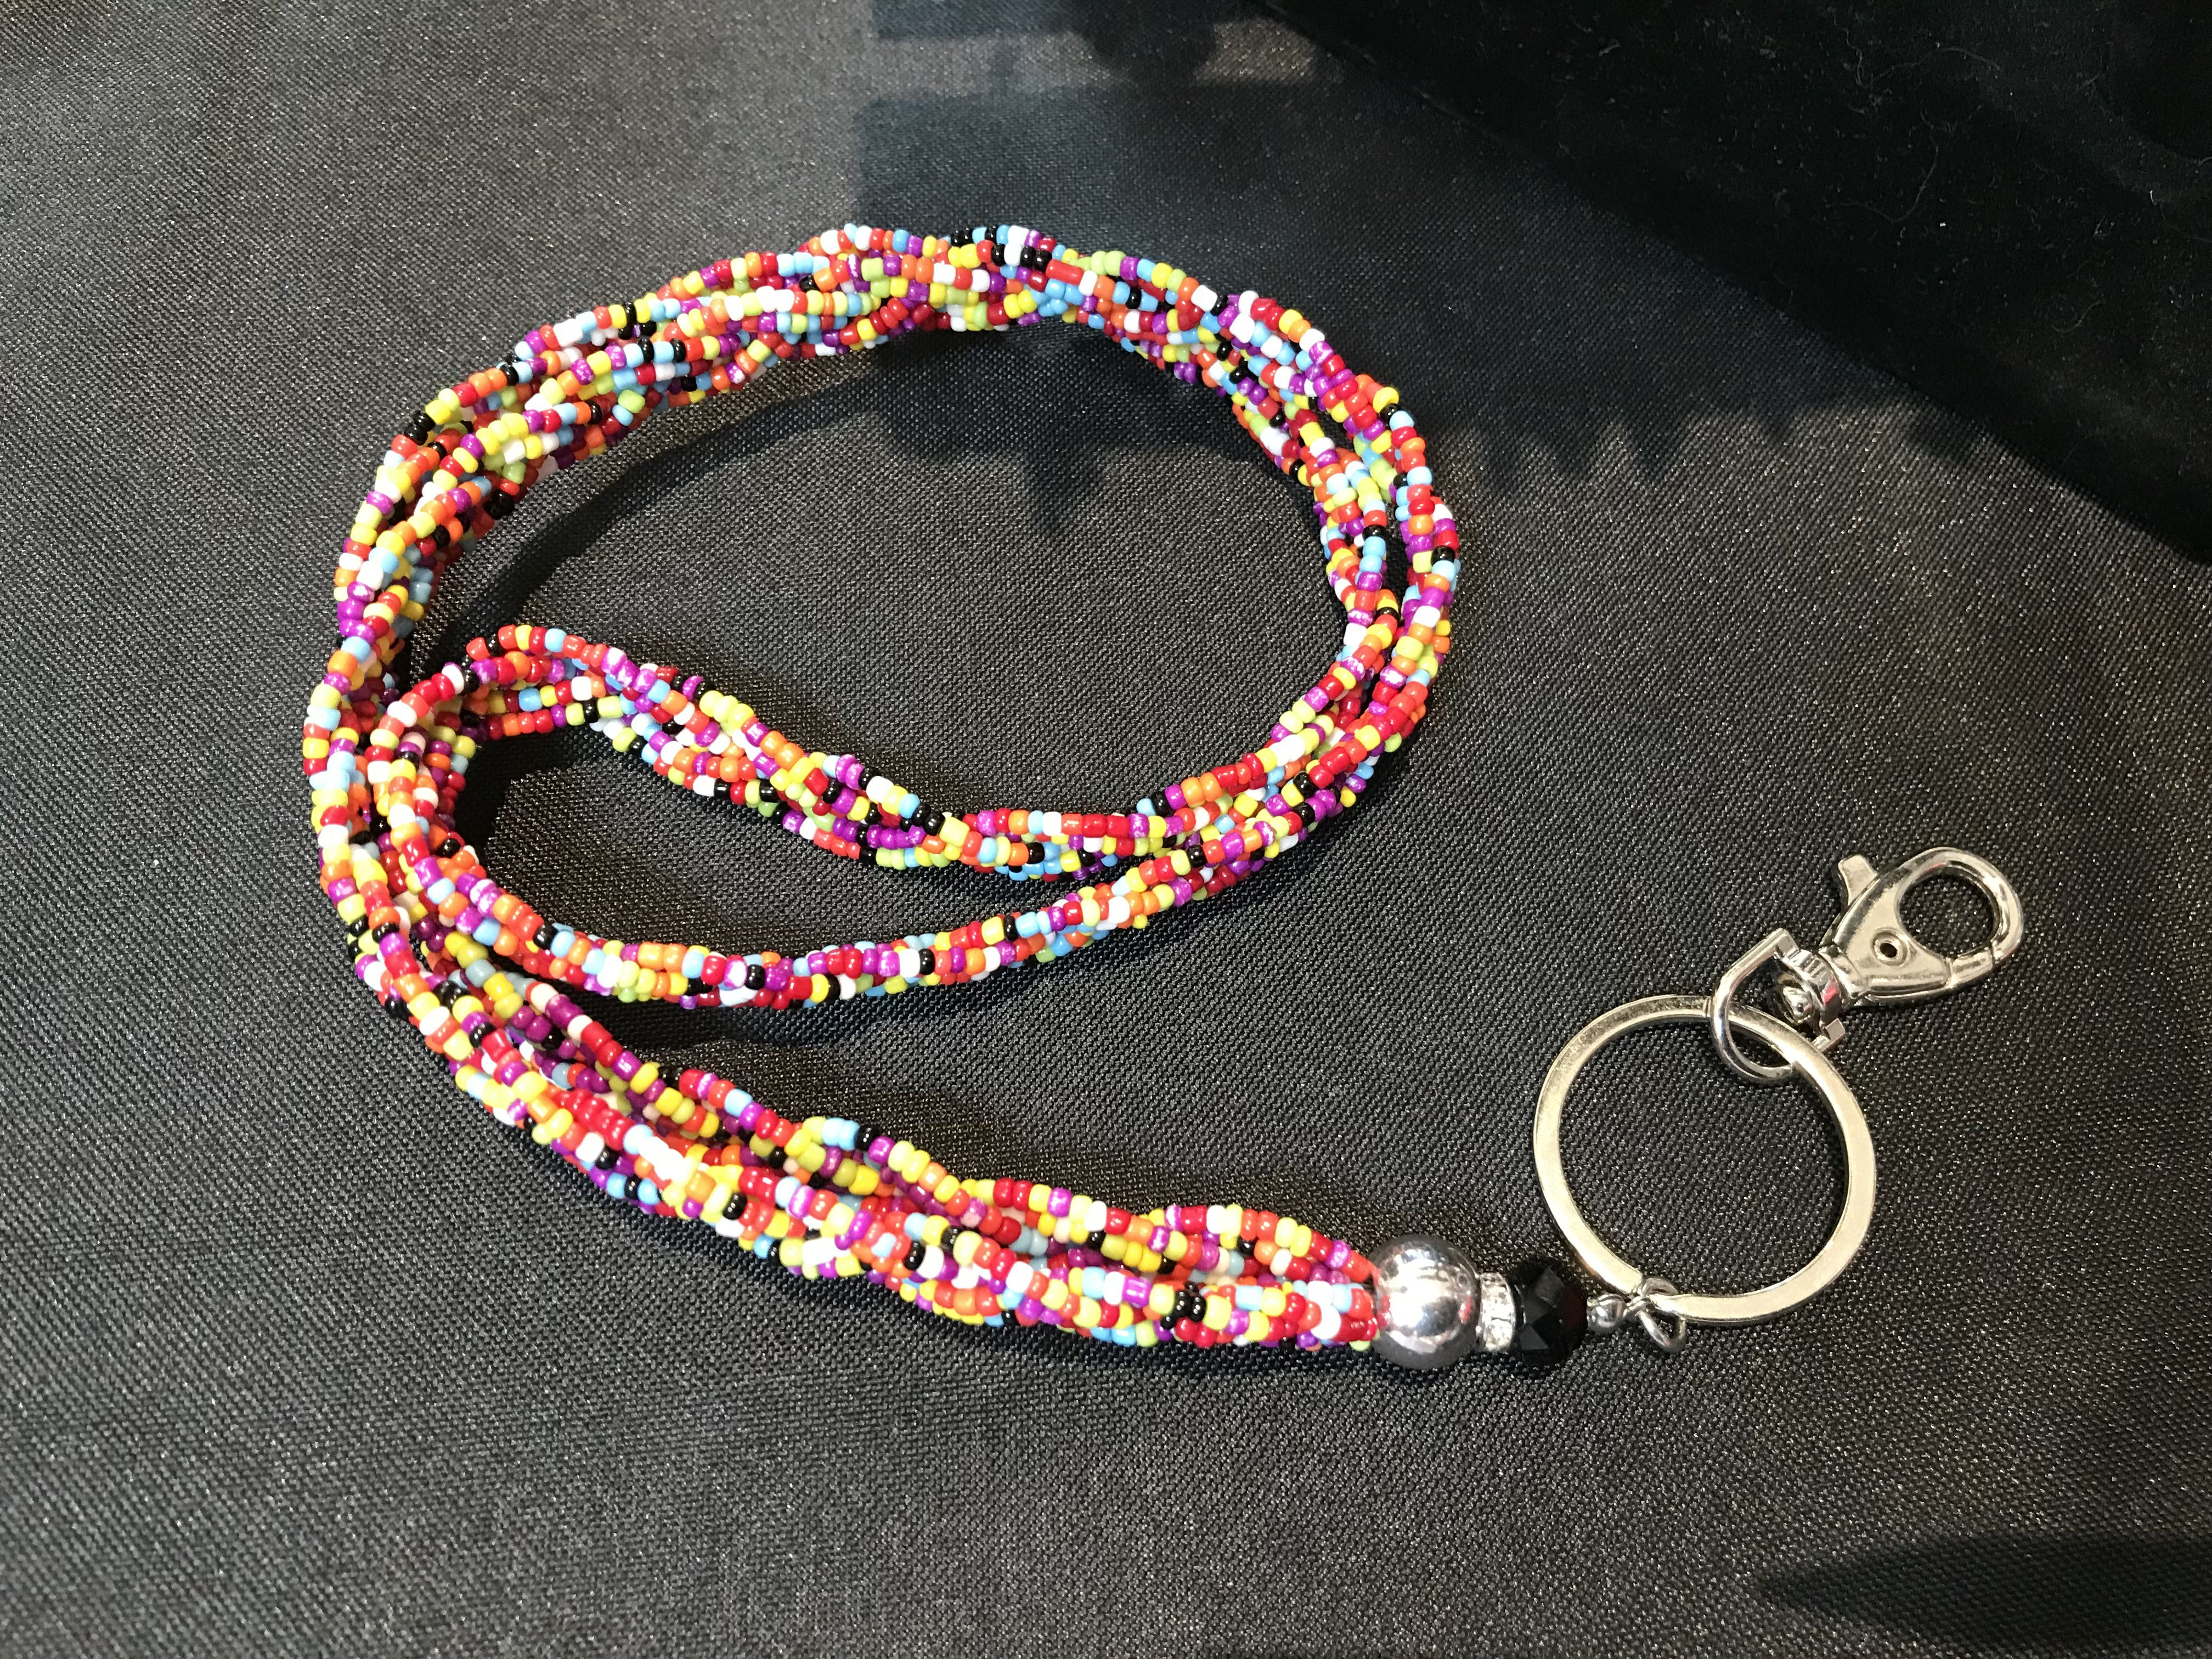 crystals colorbeads keychains gemstones holdallkeys fitforall beadedlanyards keyrings